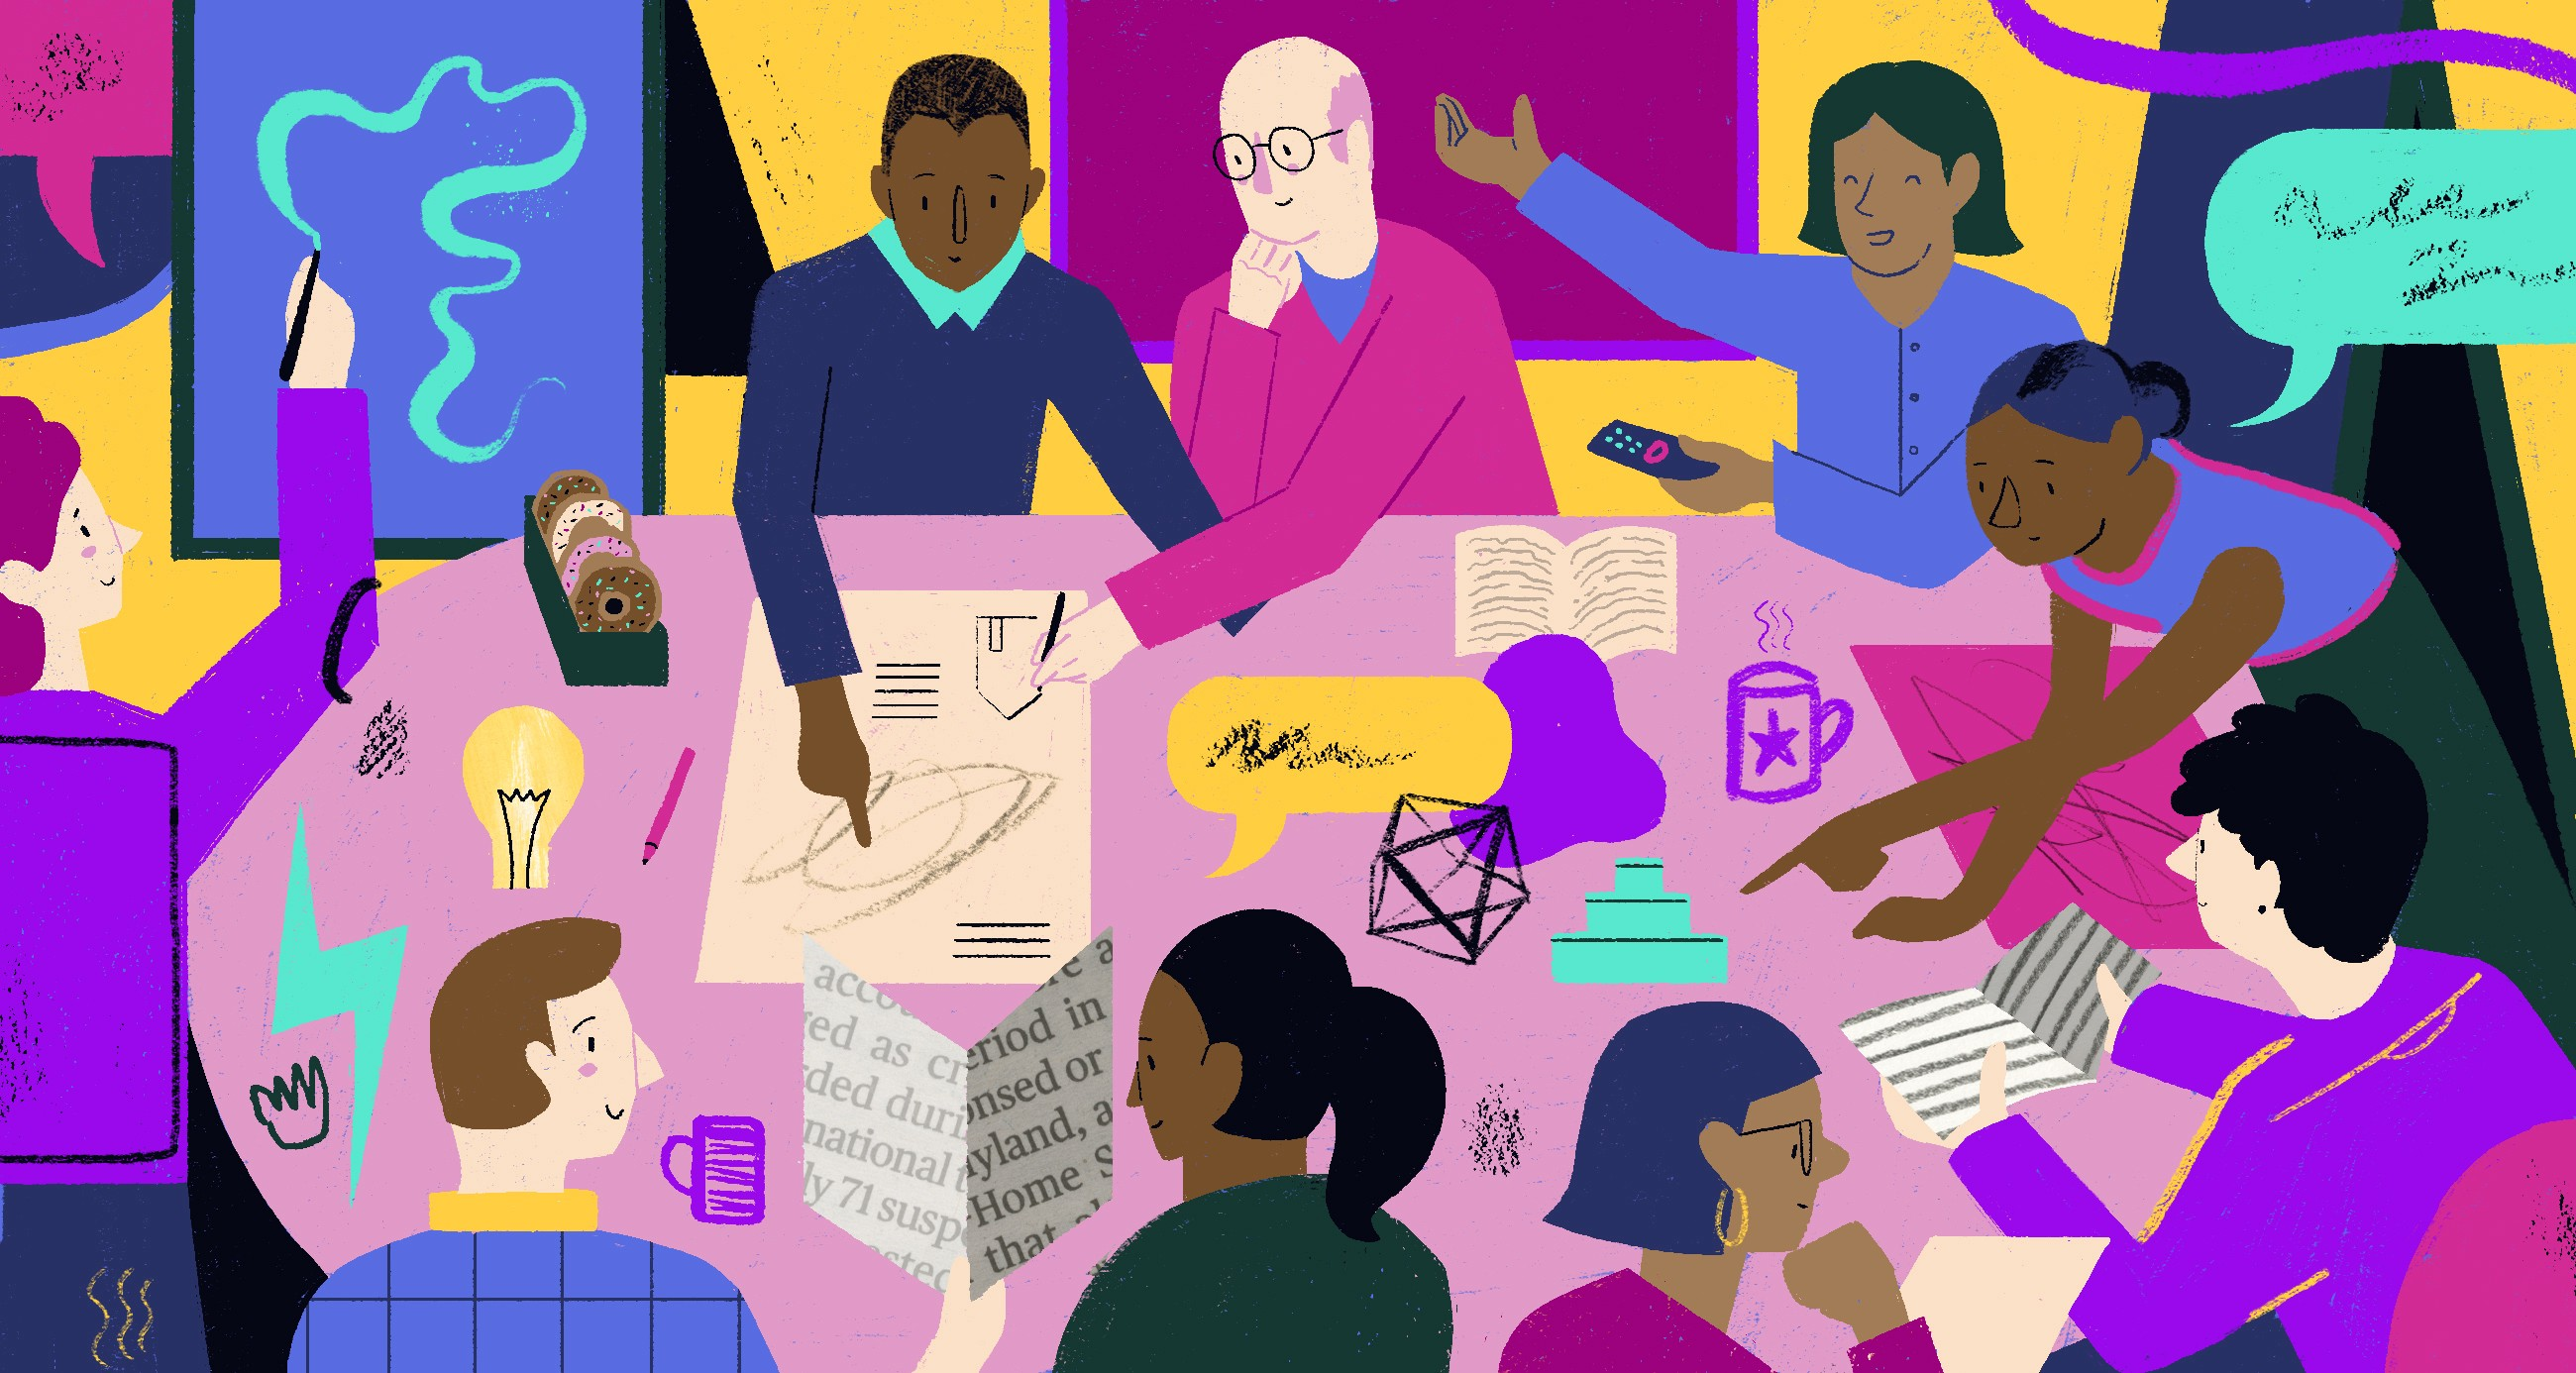 How to create a culture of open design